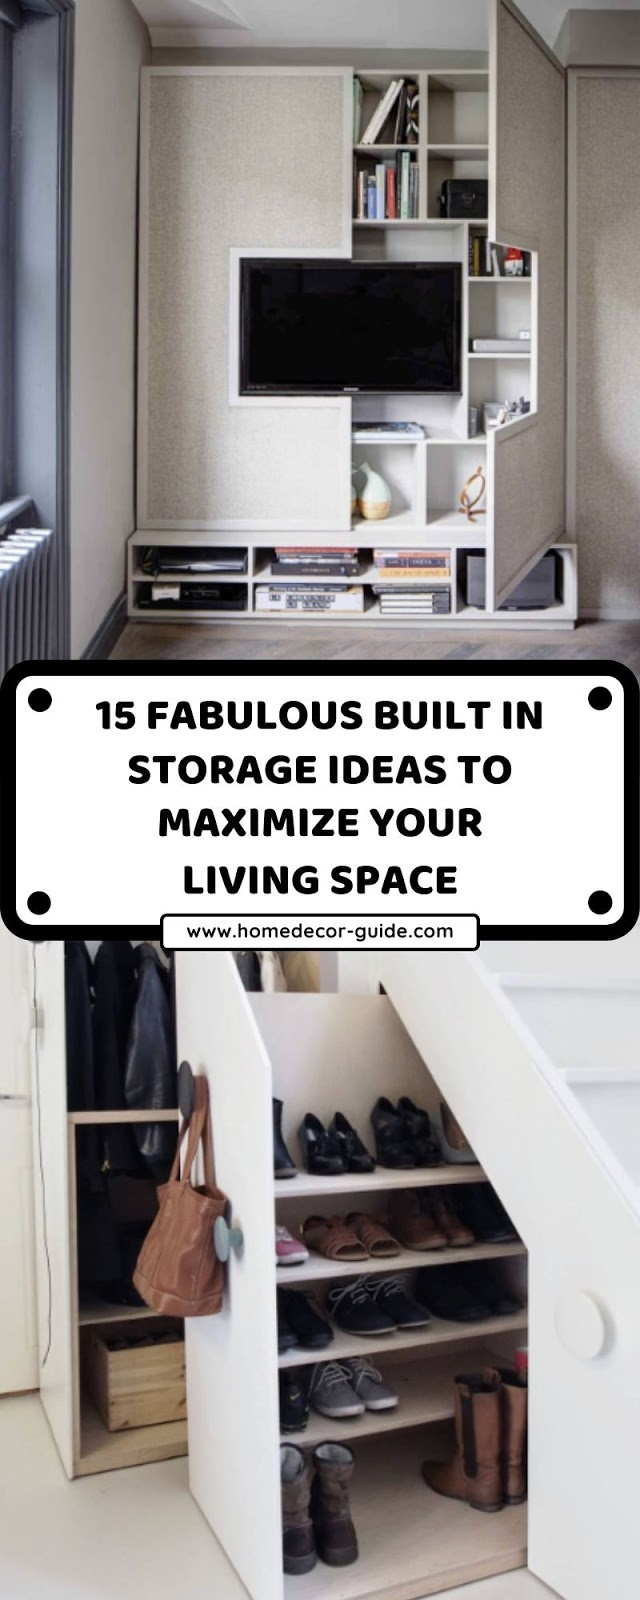 15 FABULOUS BUILT IN STORAGE IDEAS TO MAXIMIZE YOUR LIVING SPACE